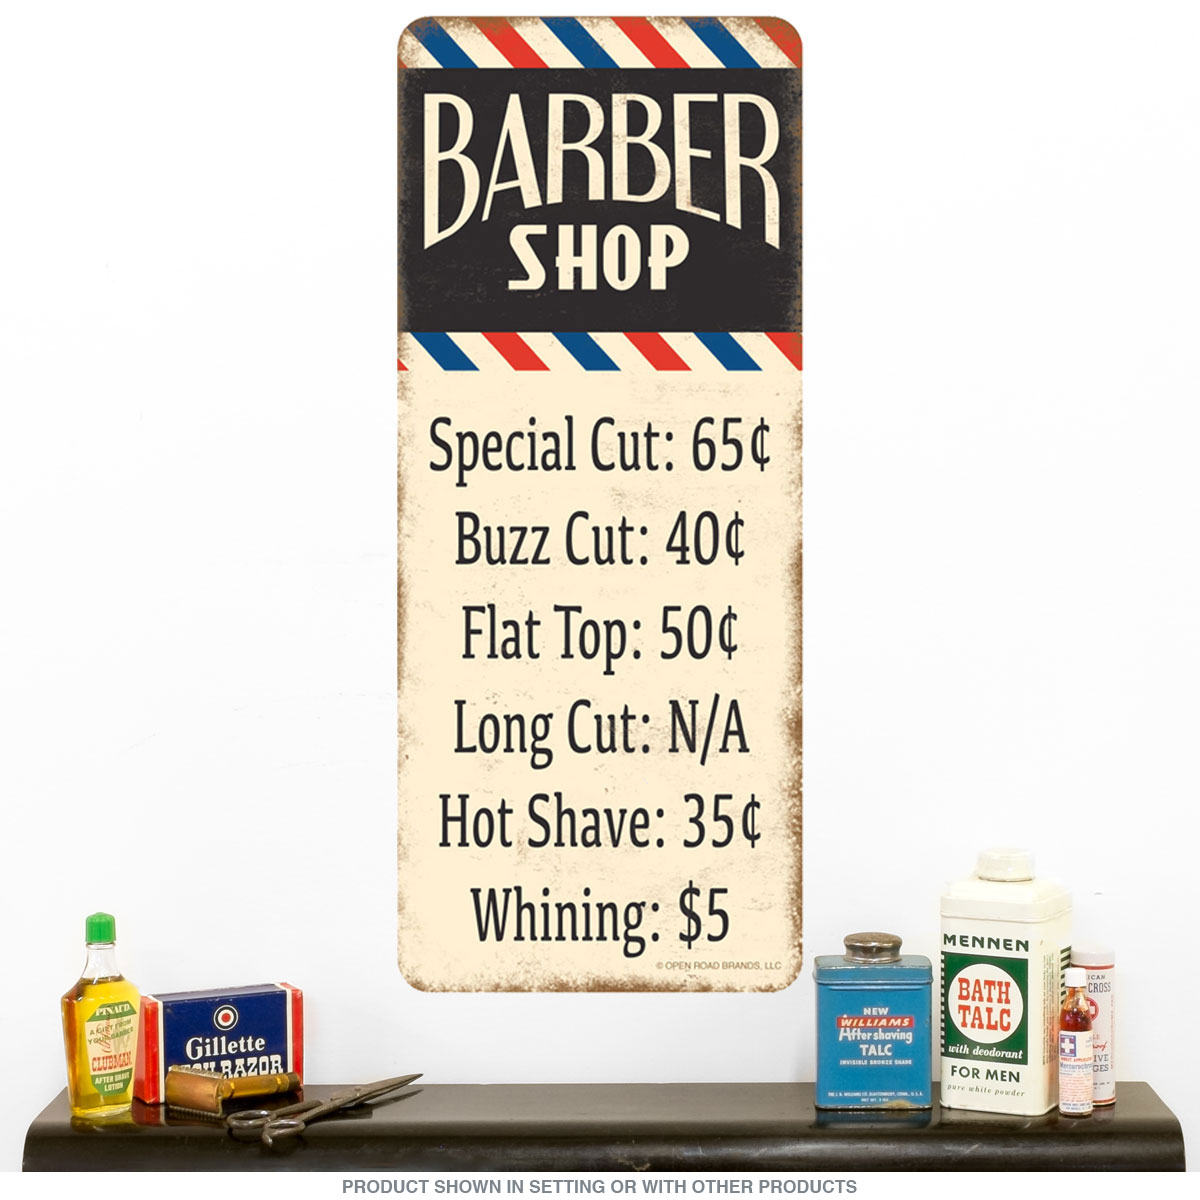 Barber Shop Haircut Prices Wall Decal At Retro Planet